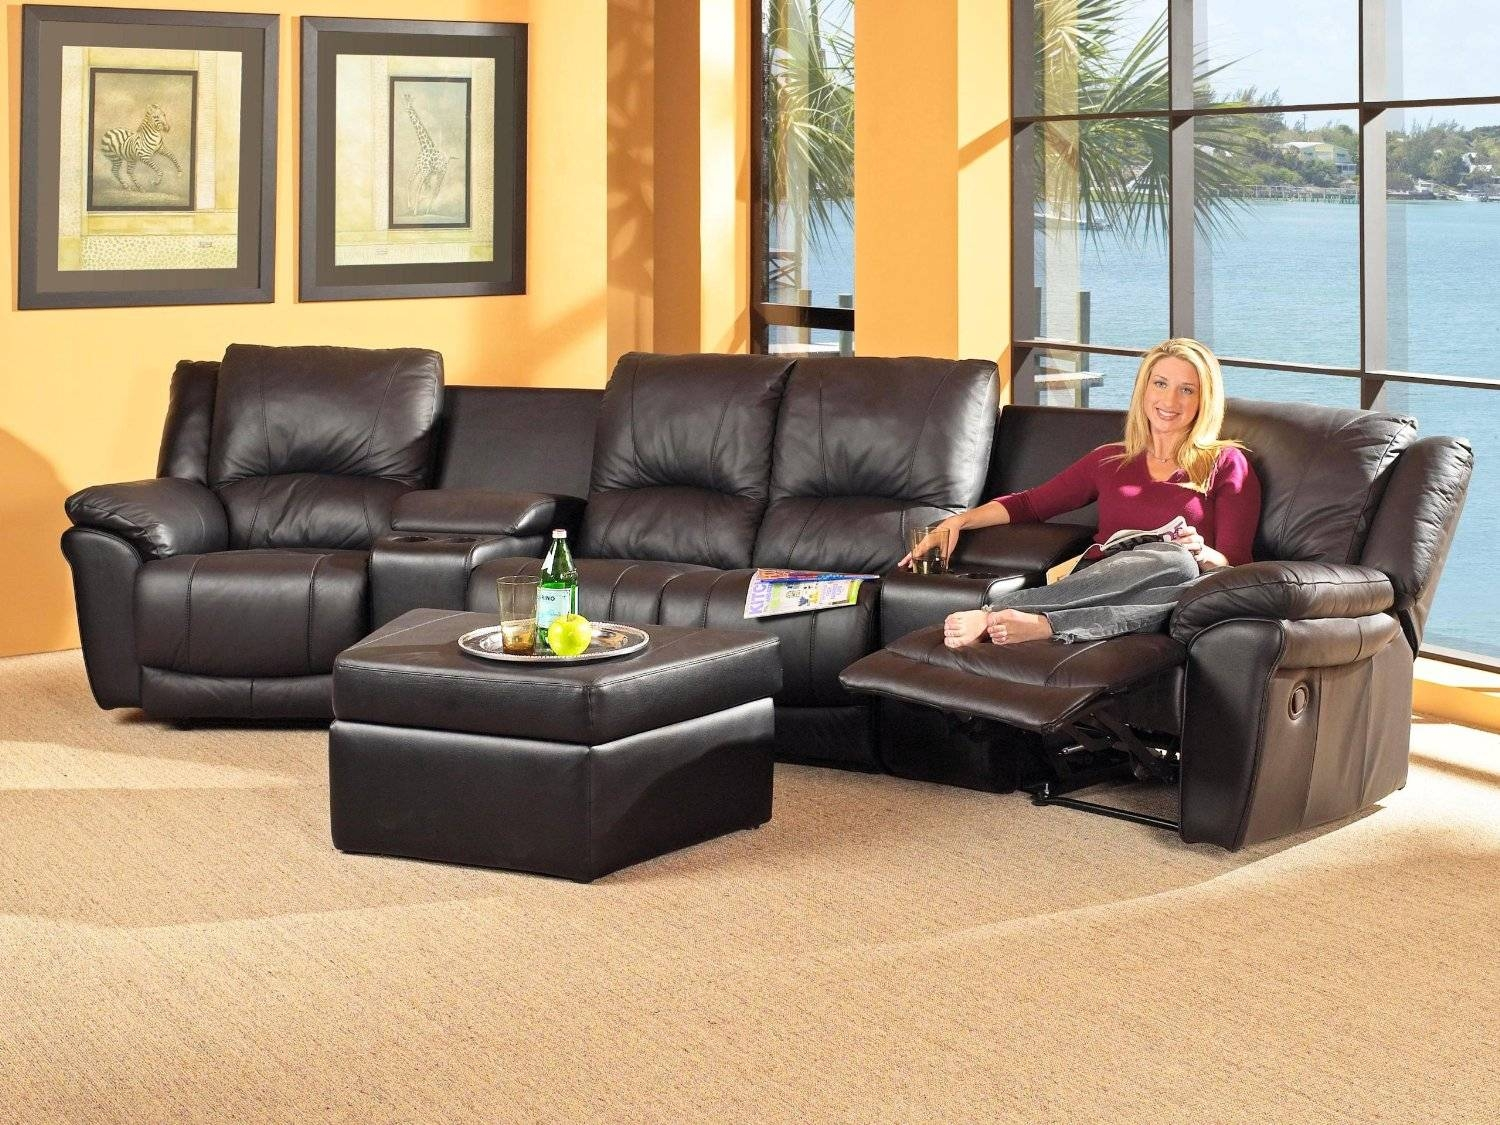 Sofas Center : Phenomenal Seatl Sofa Image Ideas Beautiful Movie within 7 Seat Sectional Sofa (Image 22 of 30)